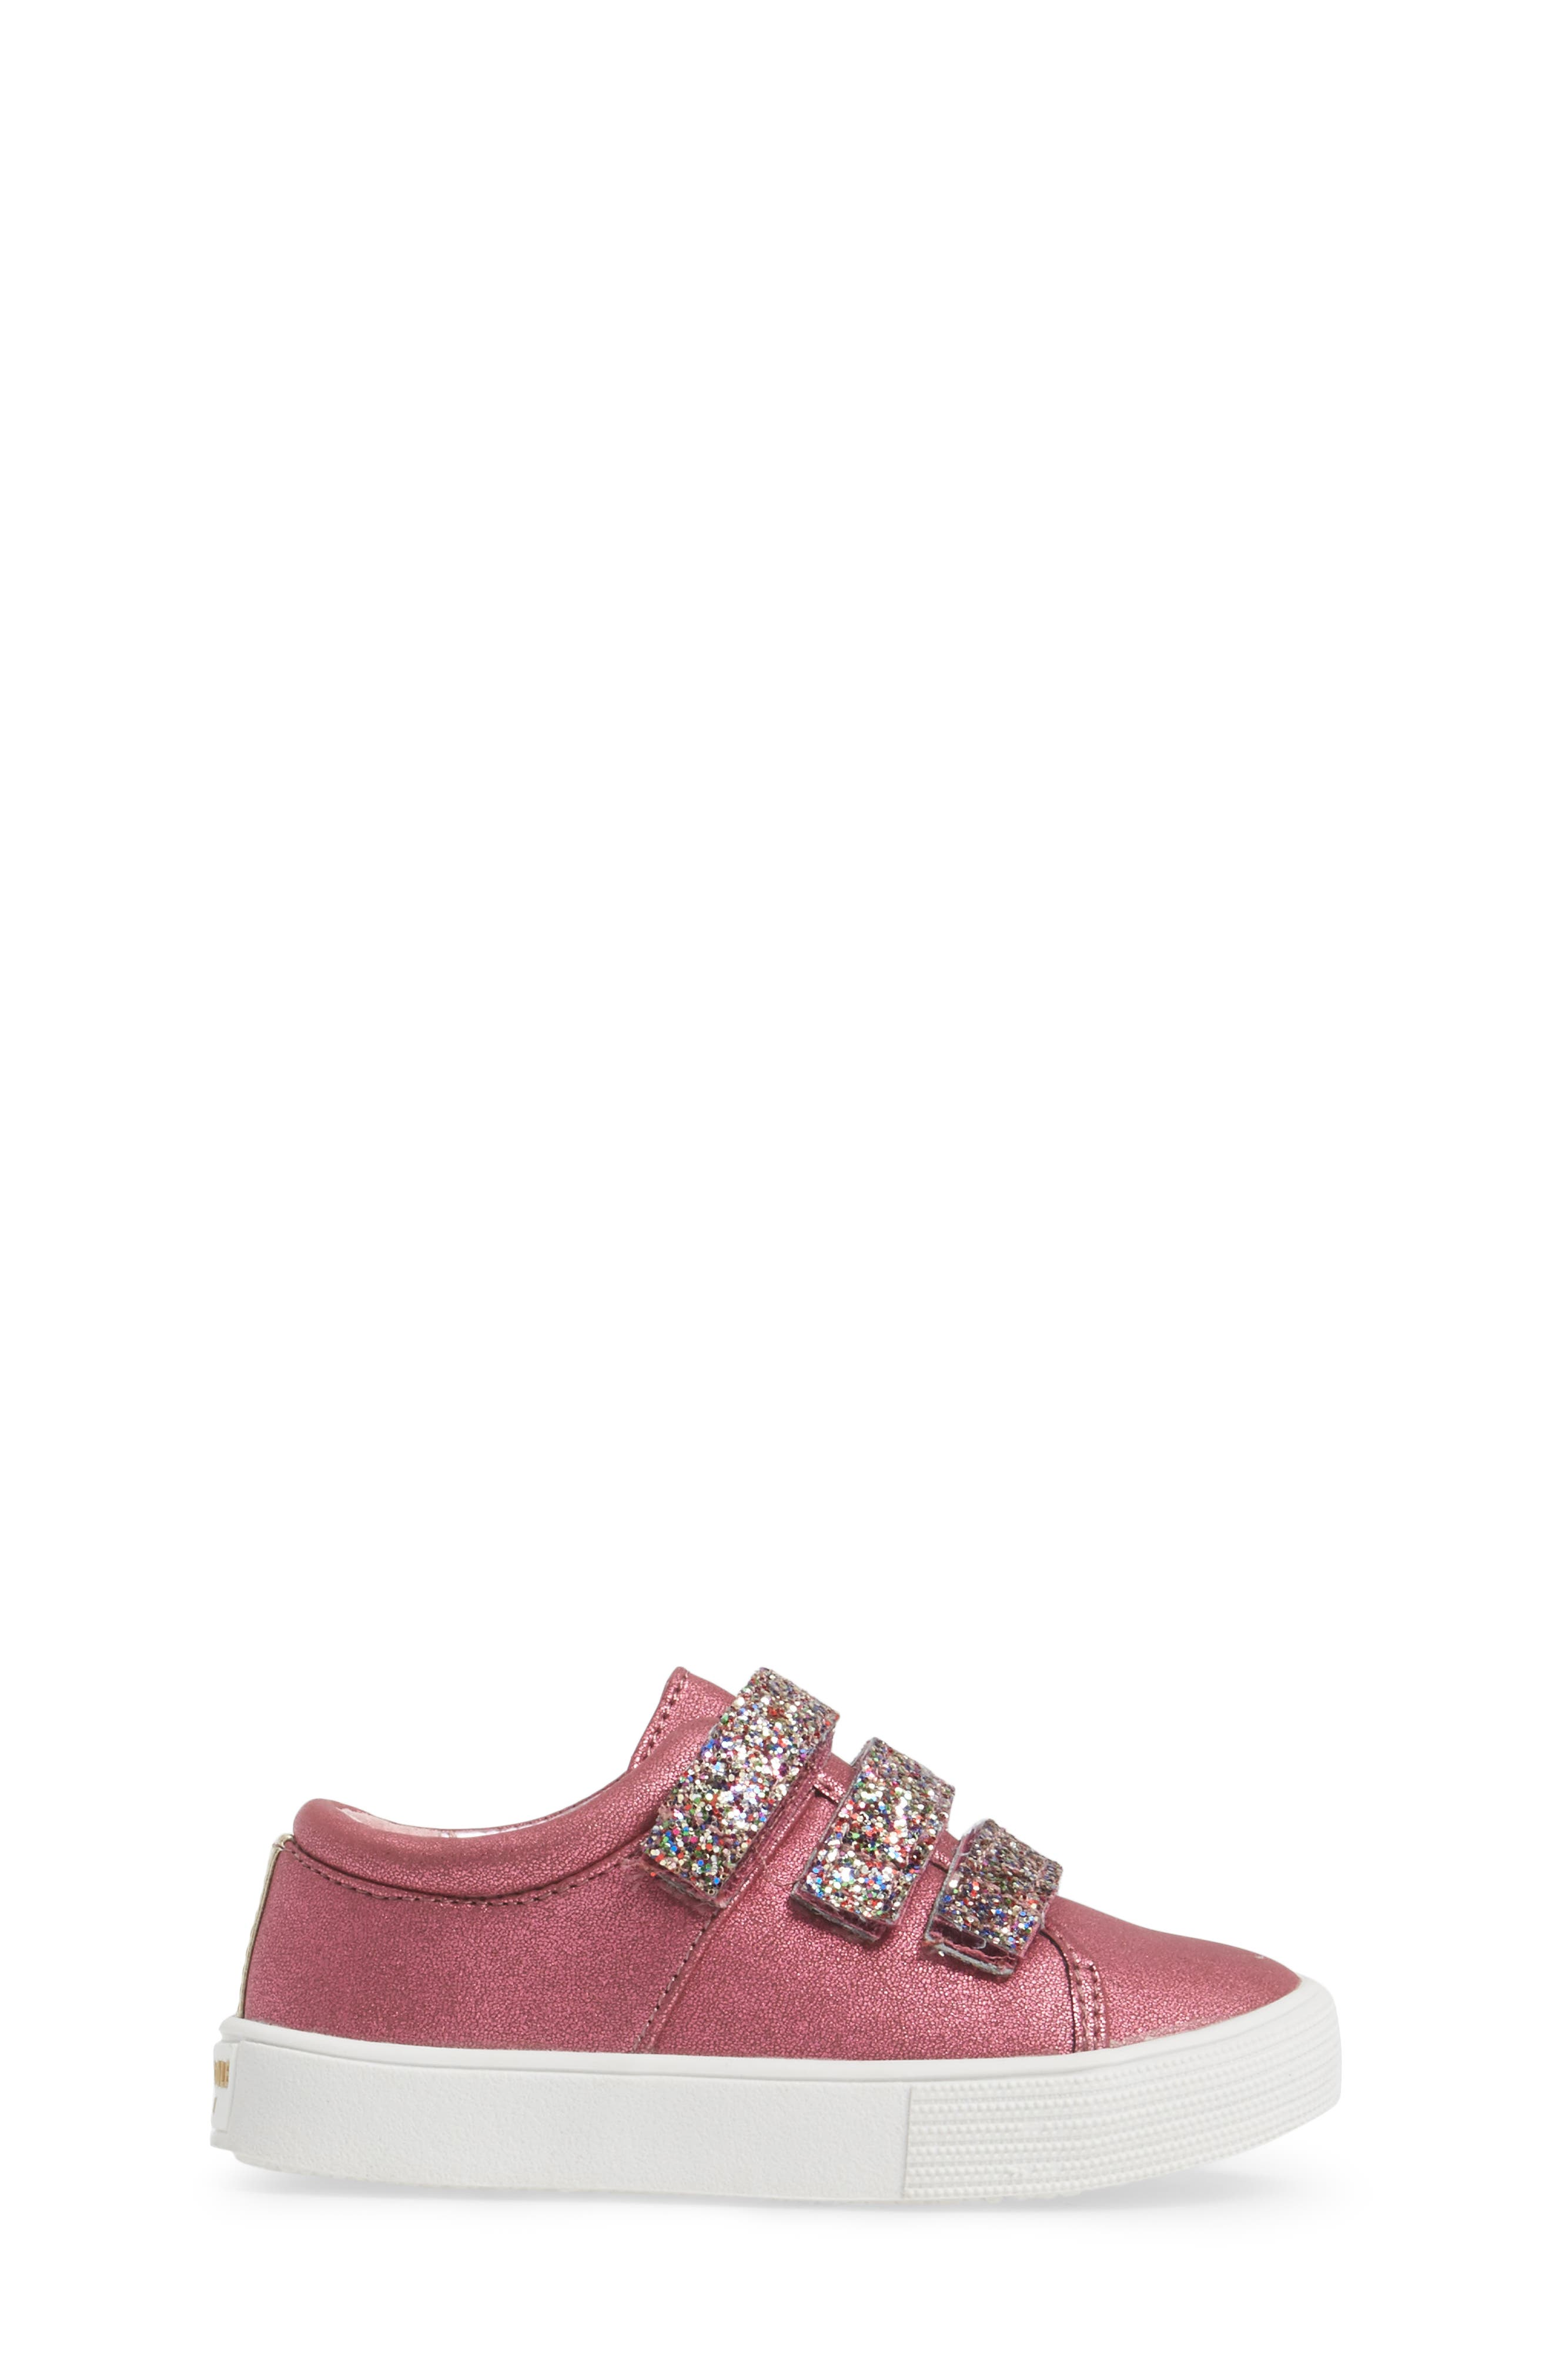 Alternate Image 3  - Kenneth Cole New York Kam Glitter Strap Sneaker (Walker & Toddler)